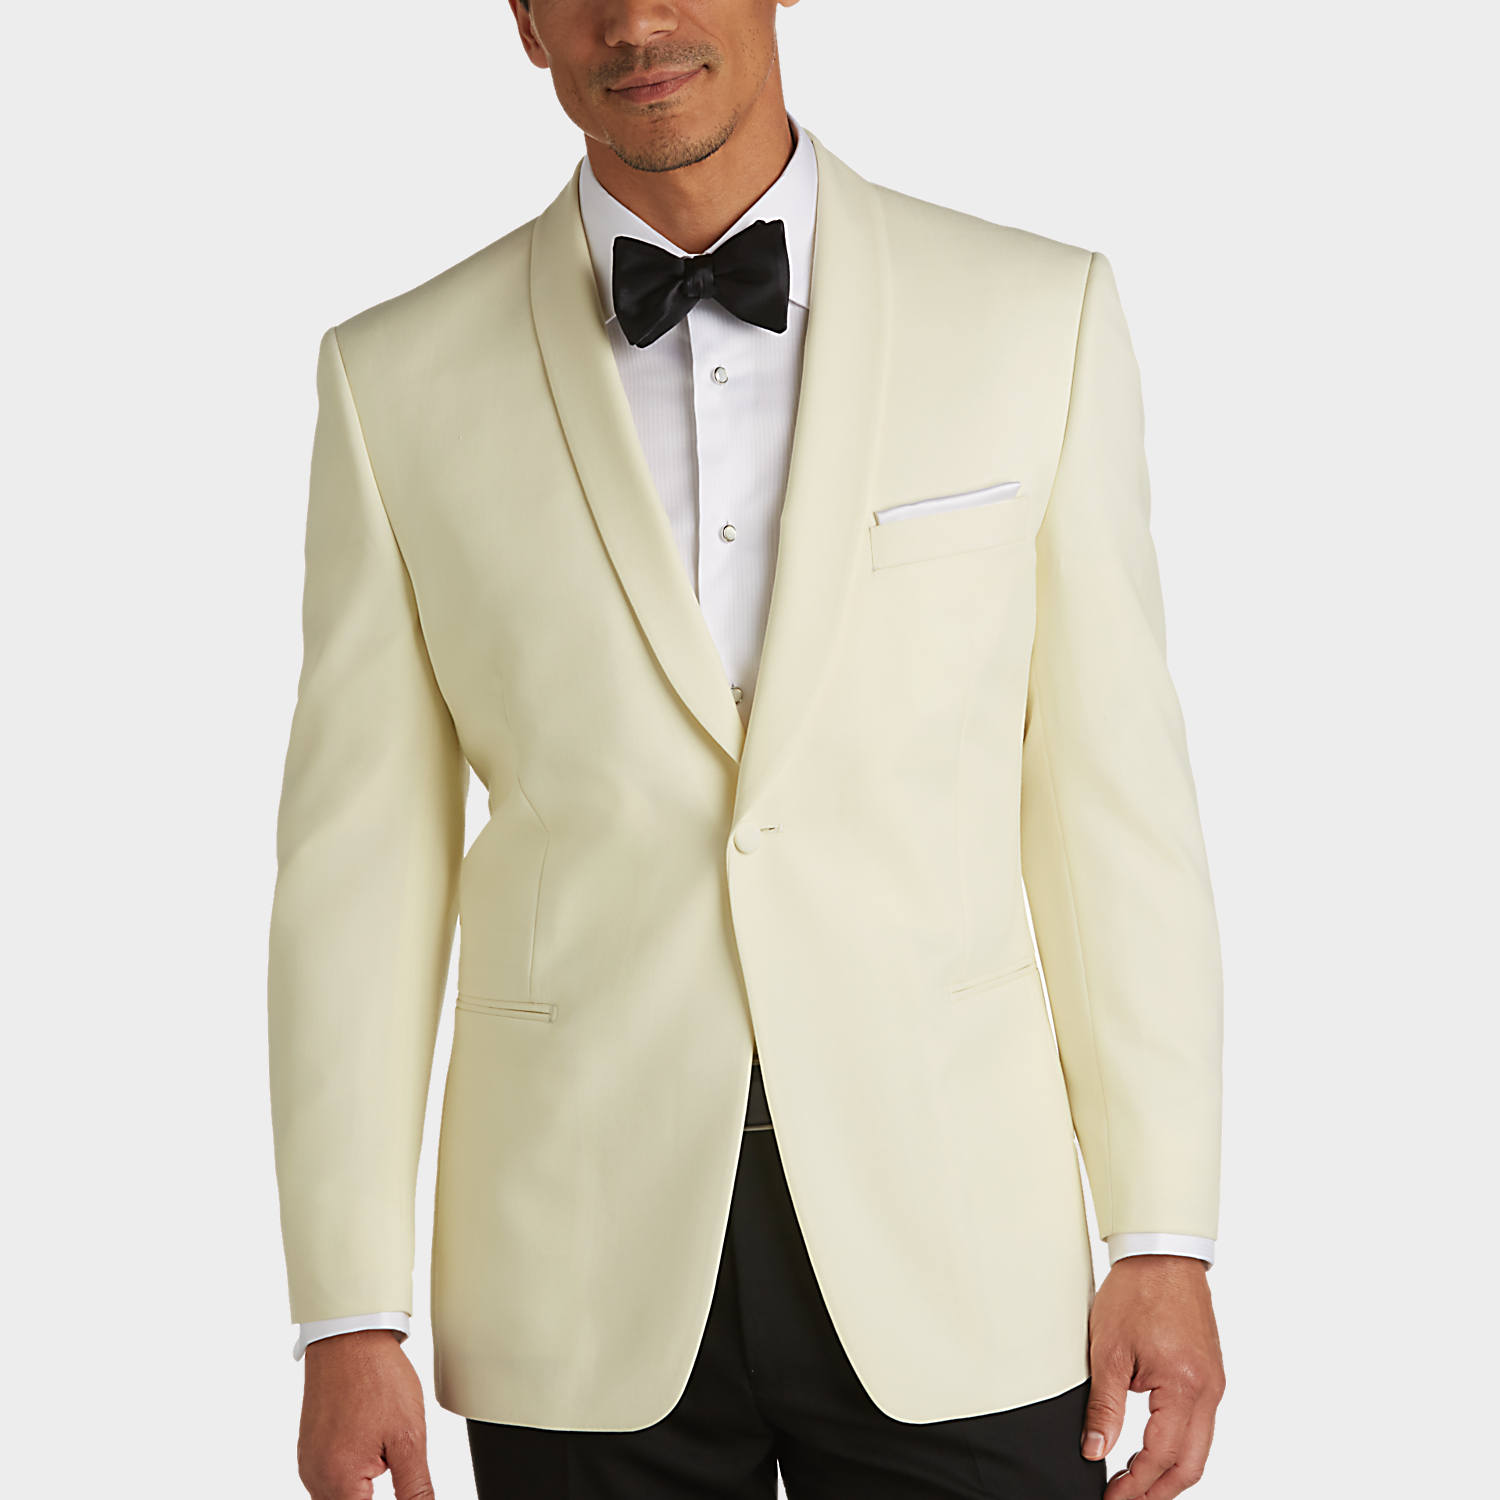 Pronto Uomo Cream Modern Fit Dinner Jacket - Men's Modern Fit ...